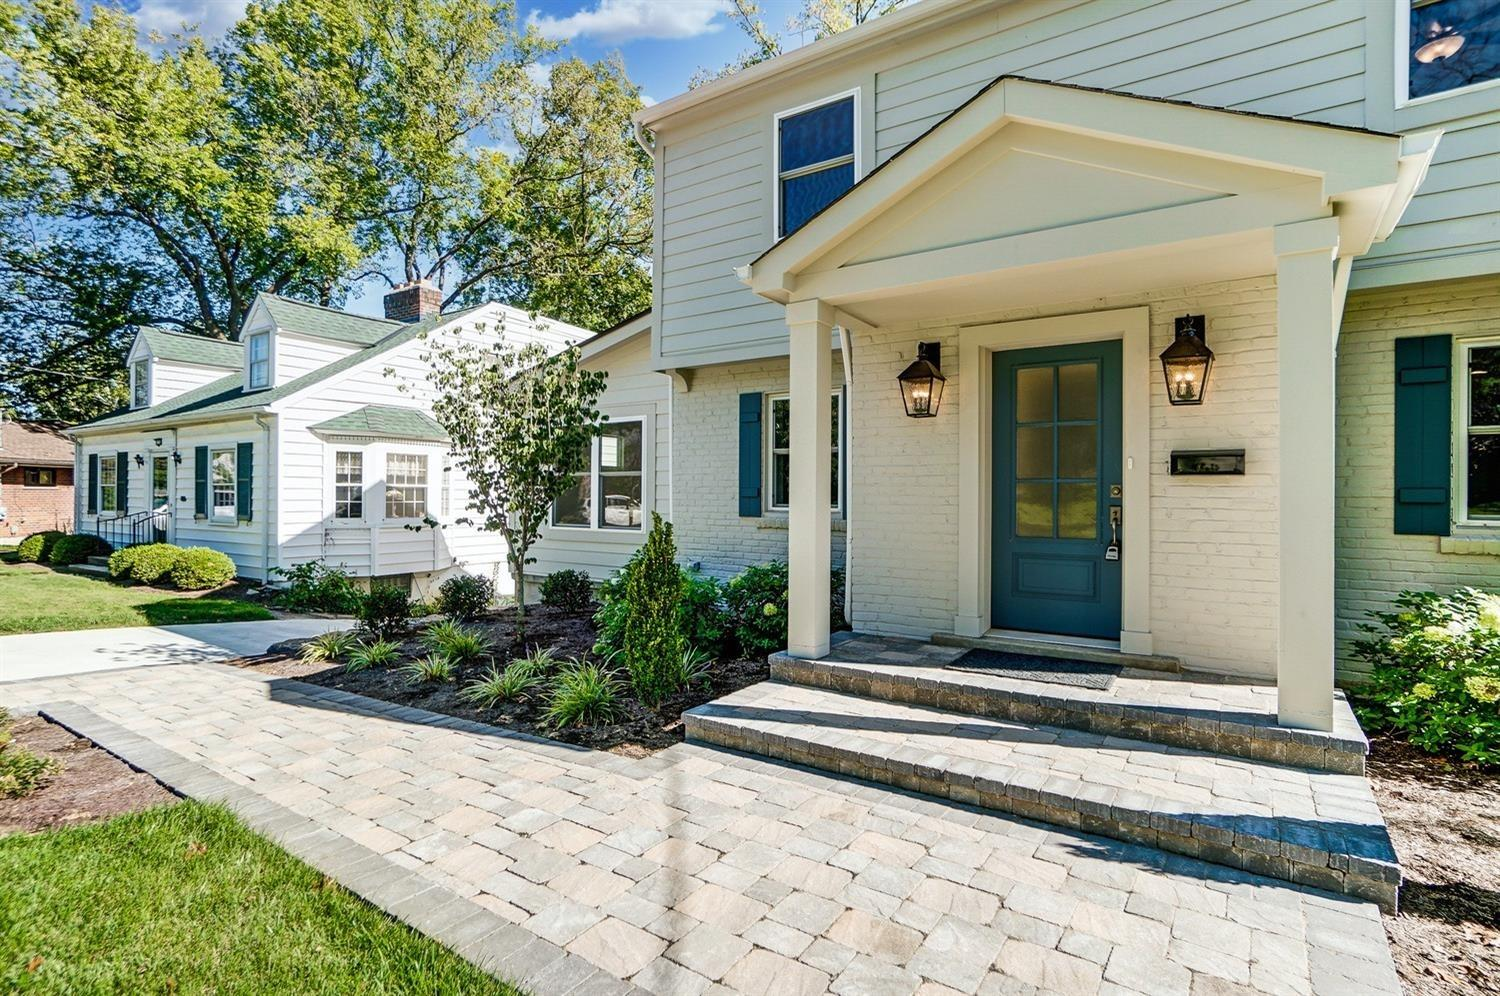 Gorgeous sold stone paver walkway, steps and porch. All new: driveway, pavement, exterior paint, siding, door, Jeld-Wen Low-E windows.